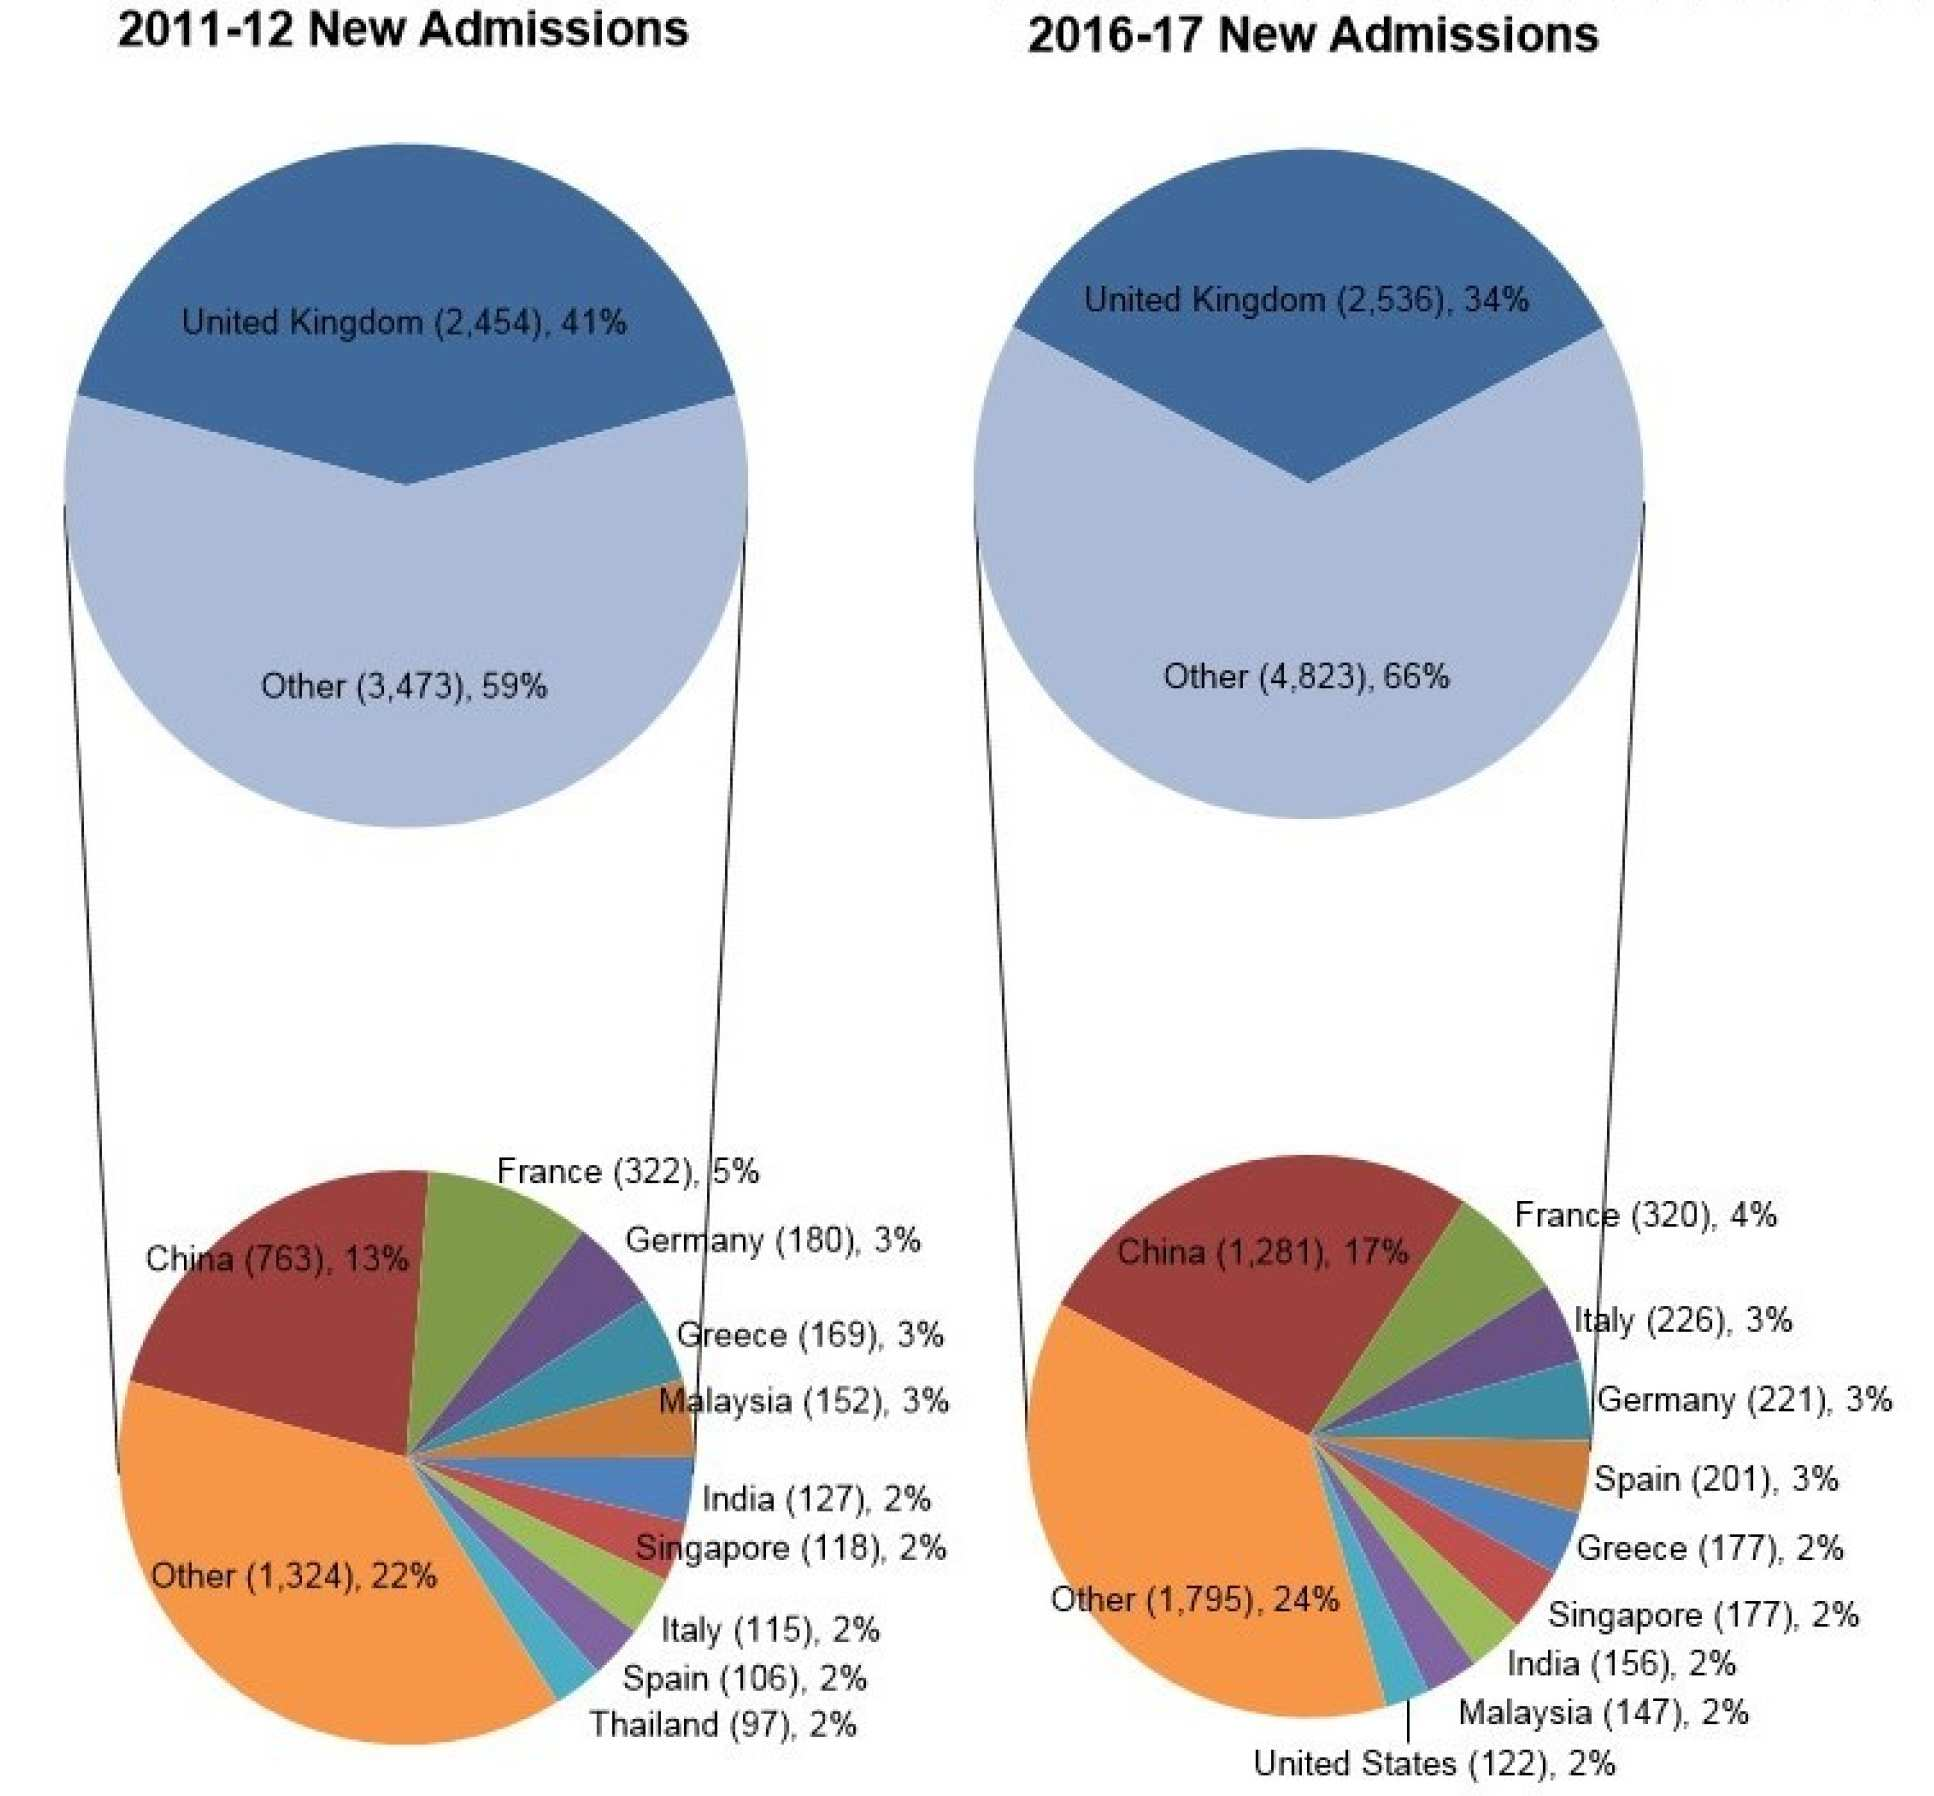 New Admissions by Nationality